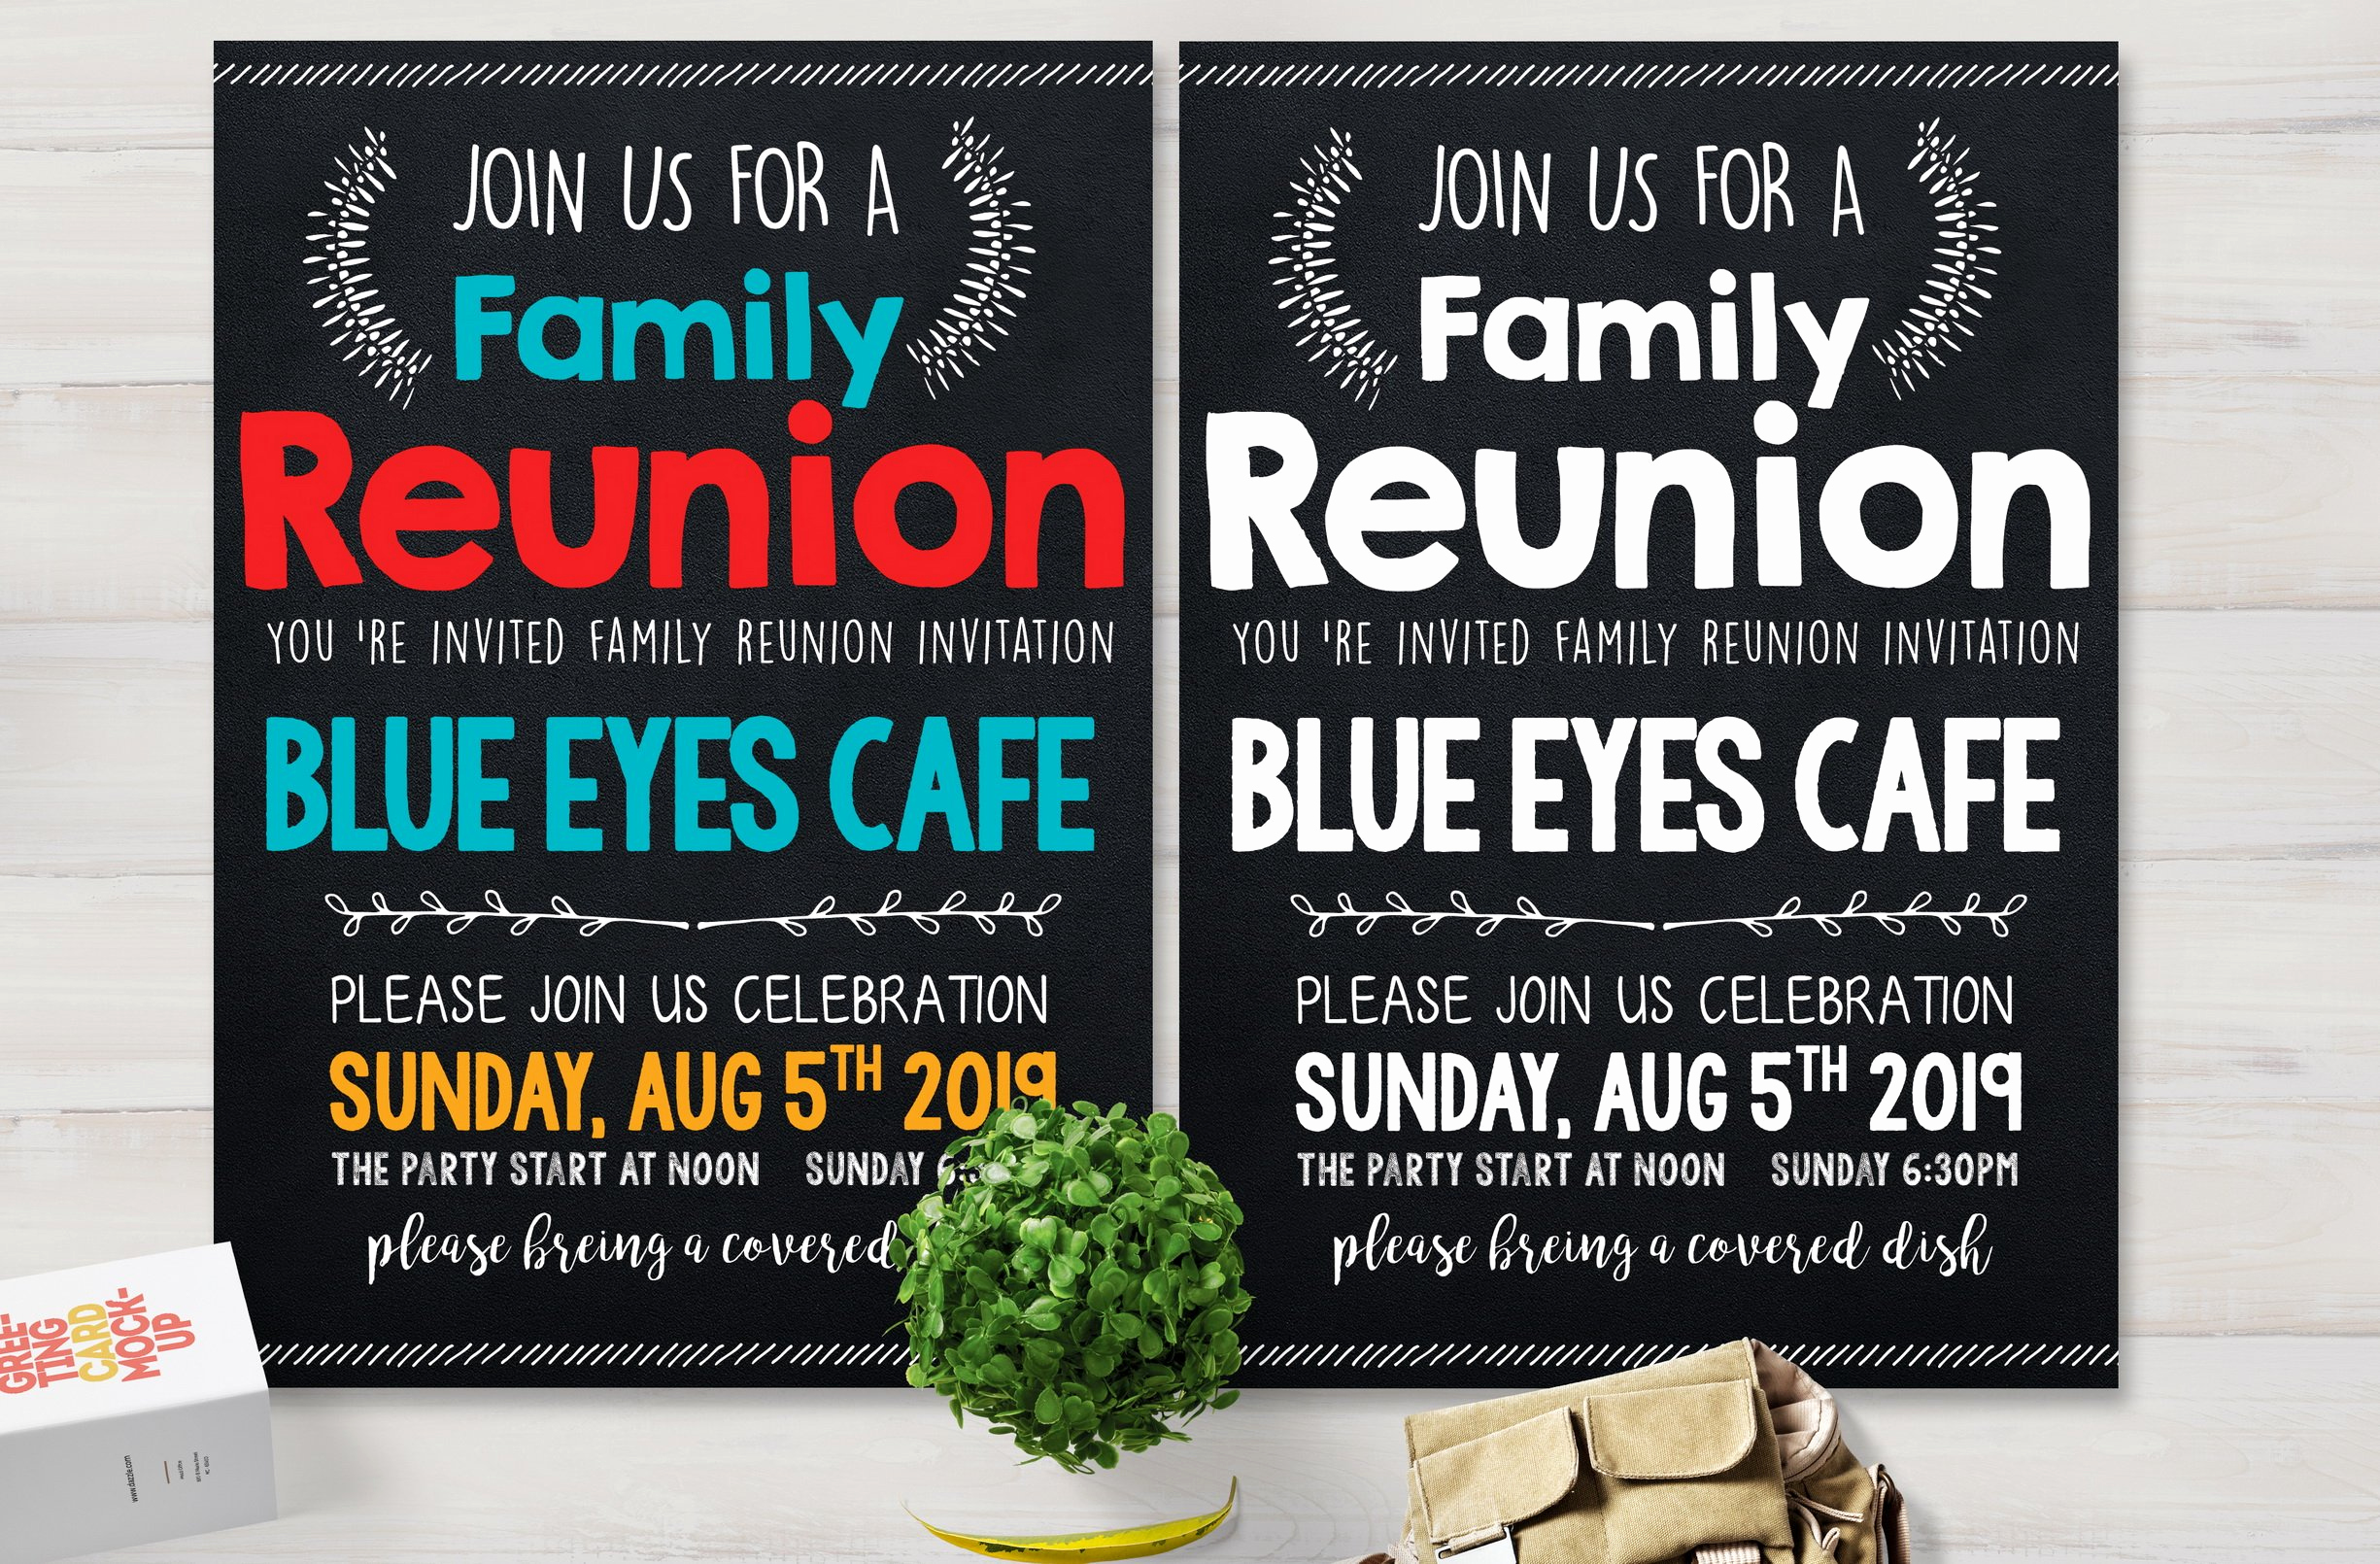 Family Reunion Flyers Templates Awesome Family Reunion Party Flyer Card Templates Creative Market